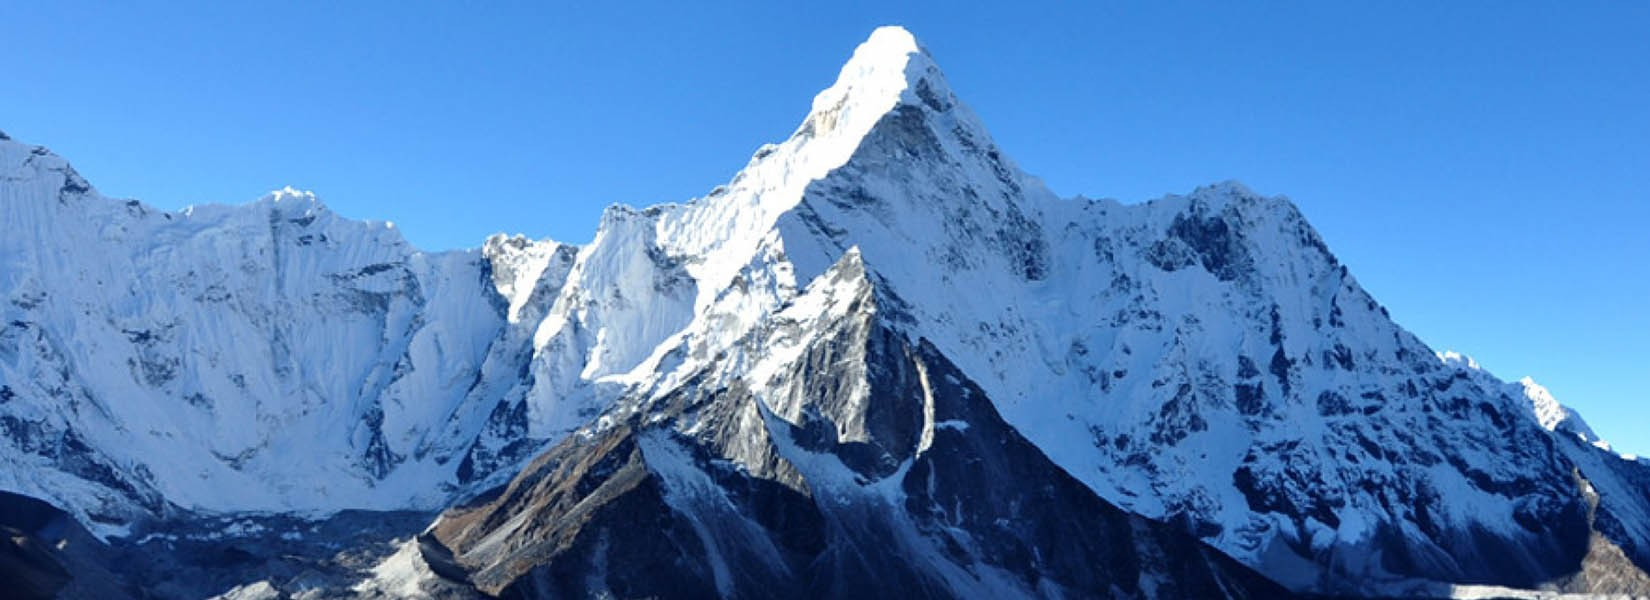 Ama Dablam Expedition - 36 Days